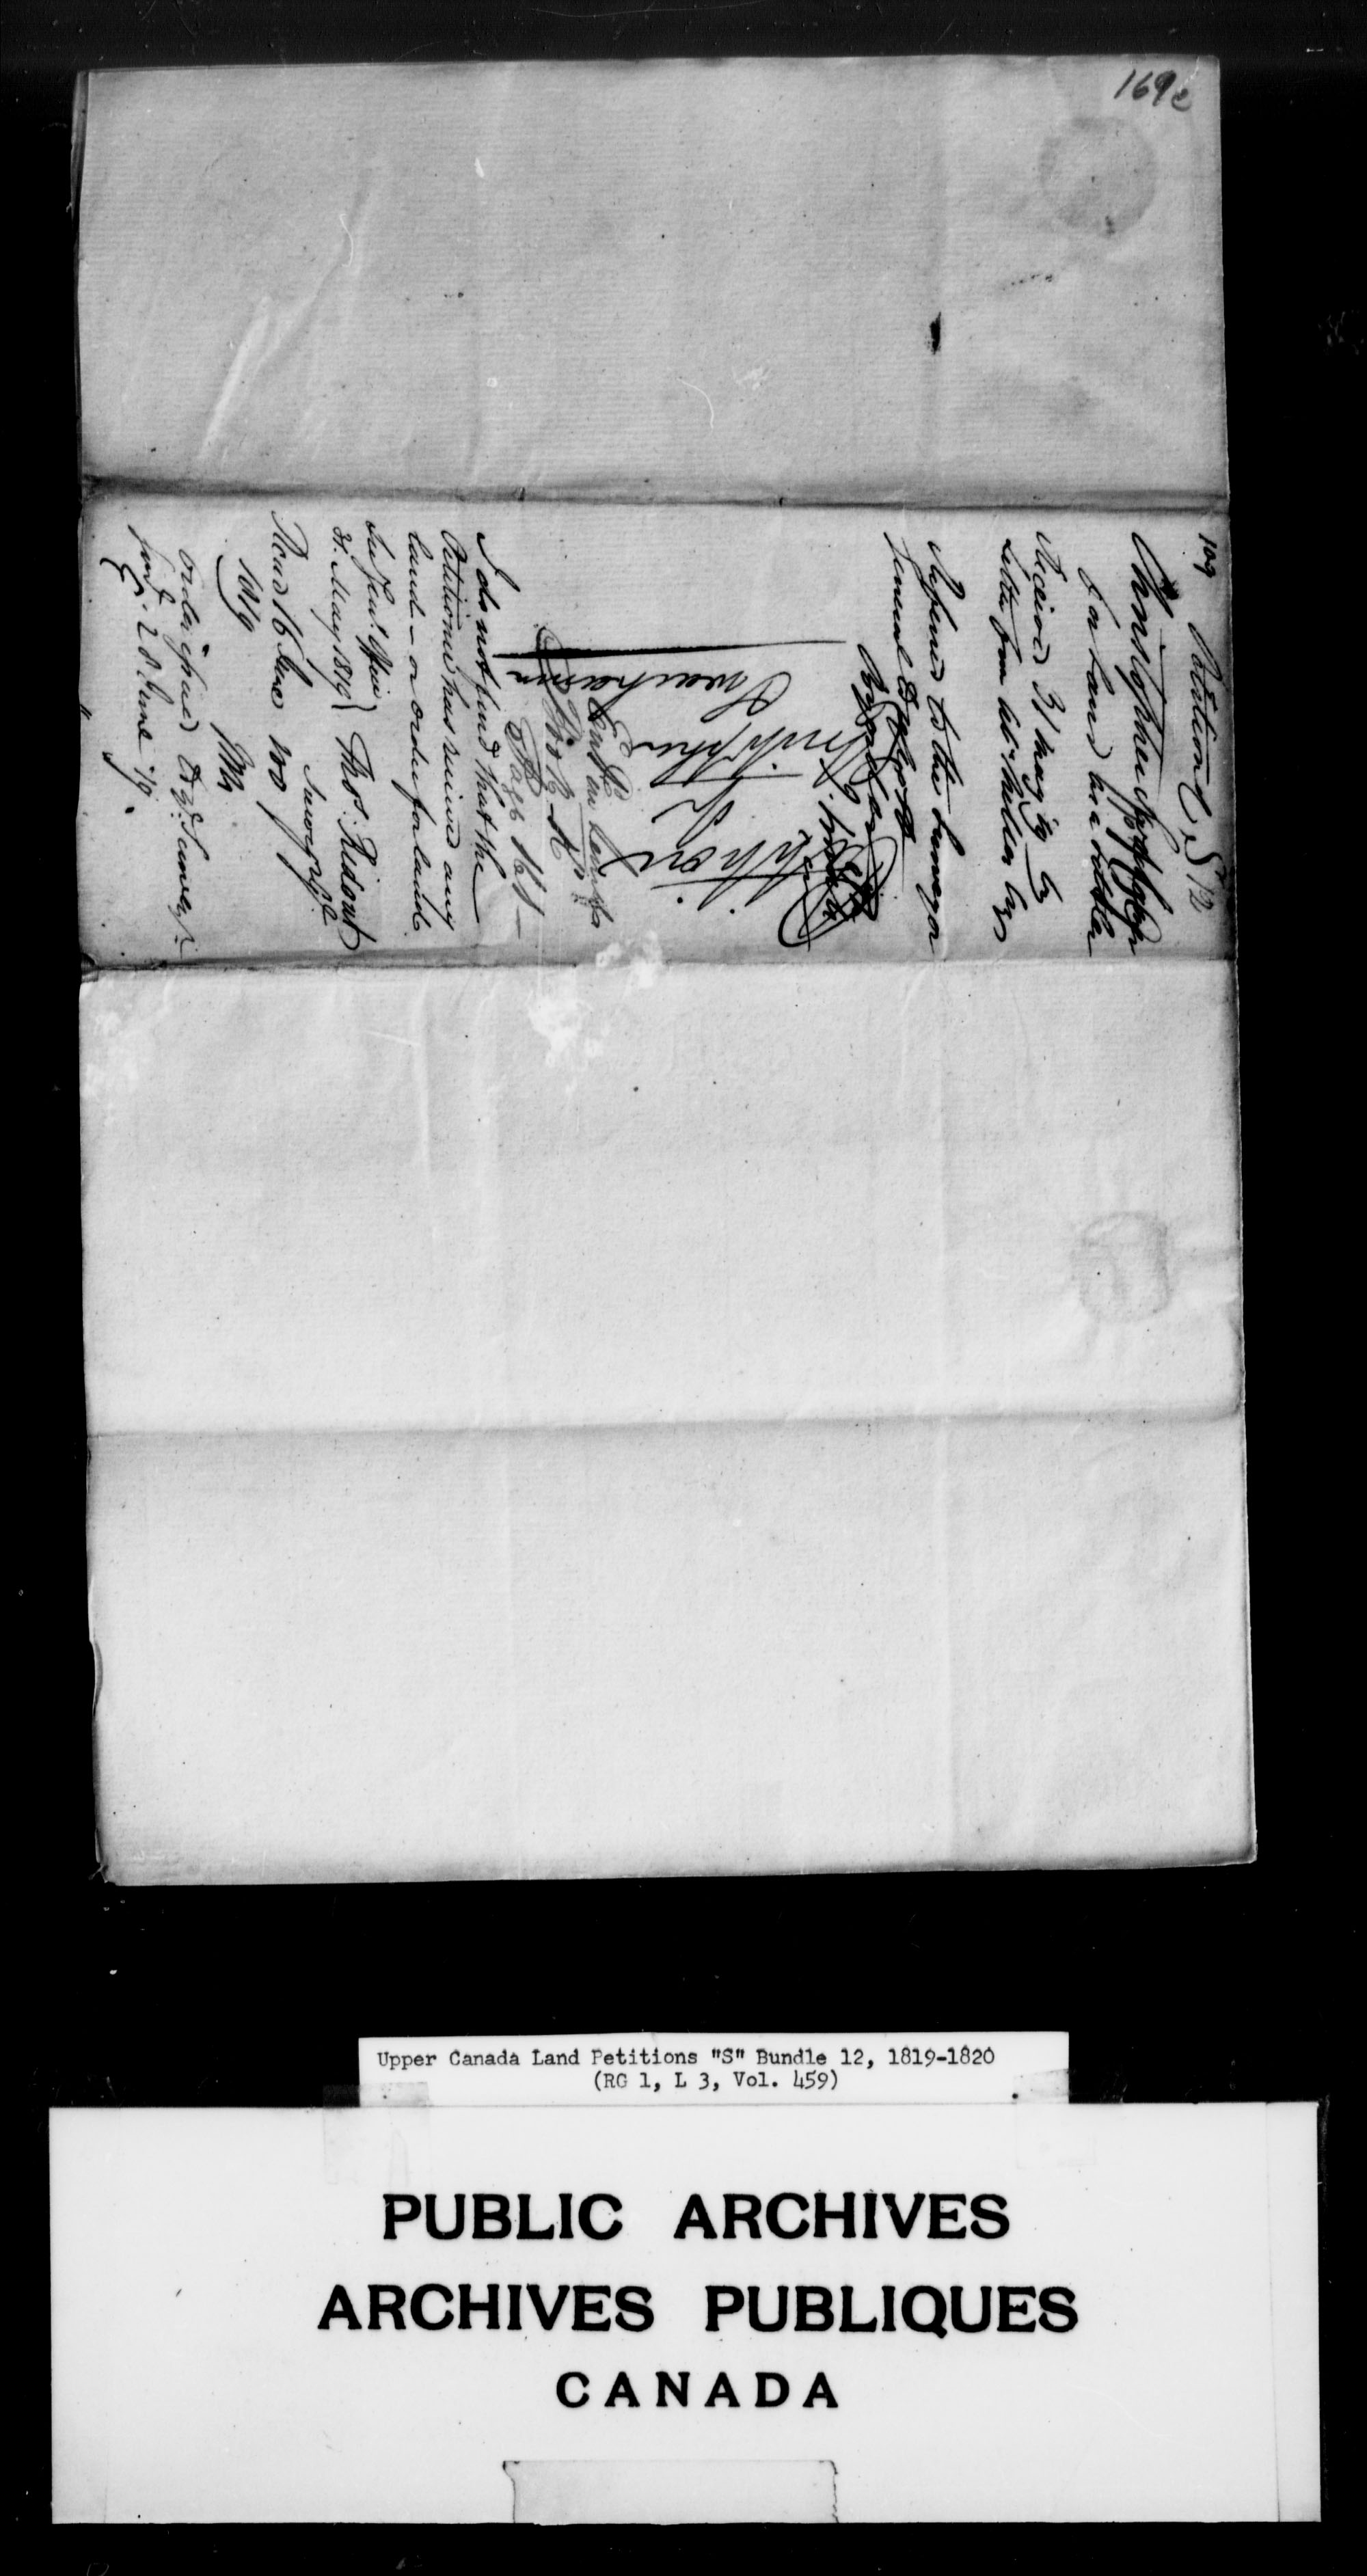 Title: Upper Canada Land Petitions (1763-1865) - Mikan Number: 205131 - Microform: c-2812